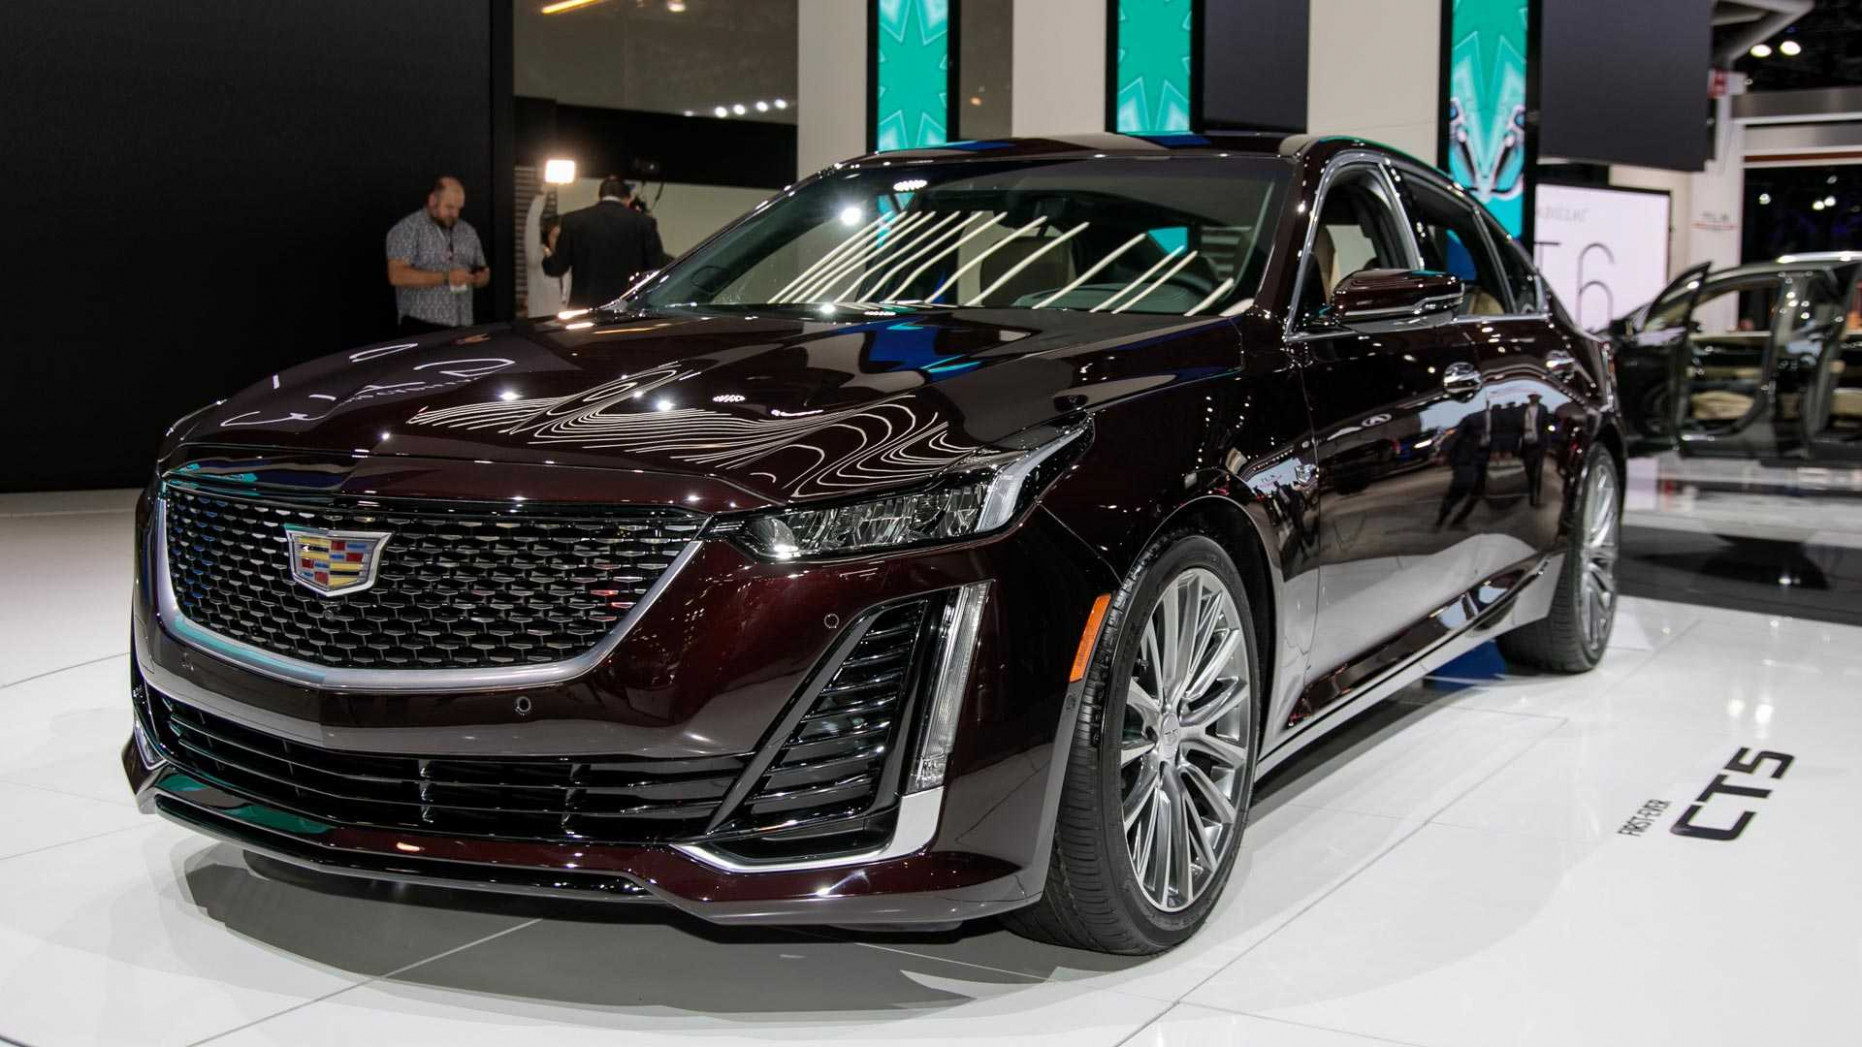 6 Cadillac CT6 Debuts, Says Goodbye To CTS [UPDATE] - 2020 cadillac for sale near me